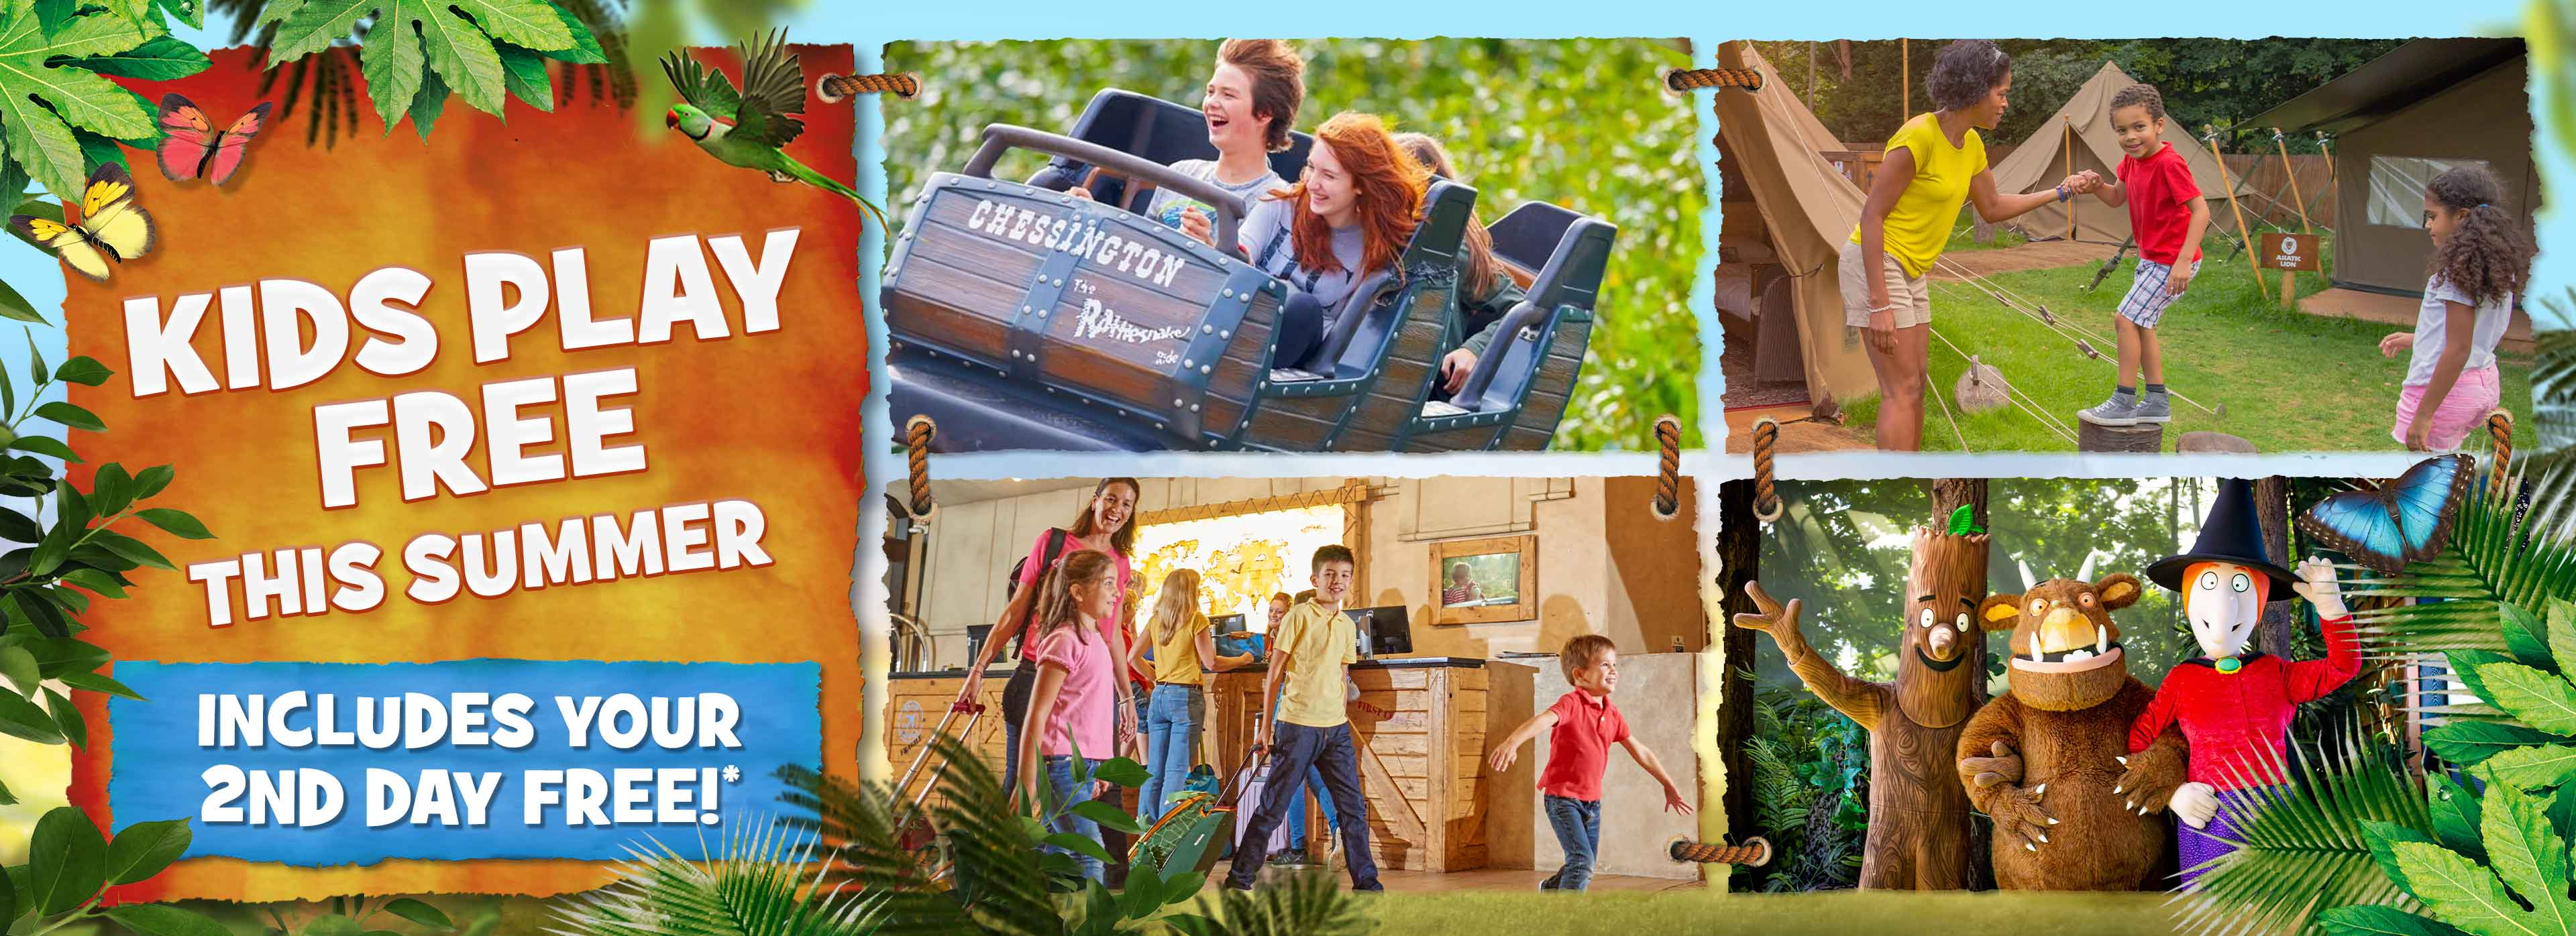 Kids Play FREE this Summer at Chessington World of Adventures Resort